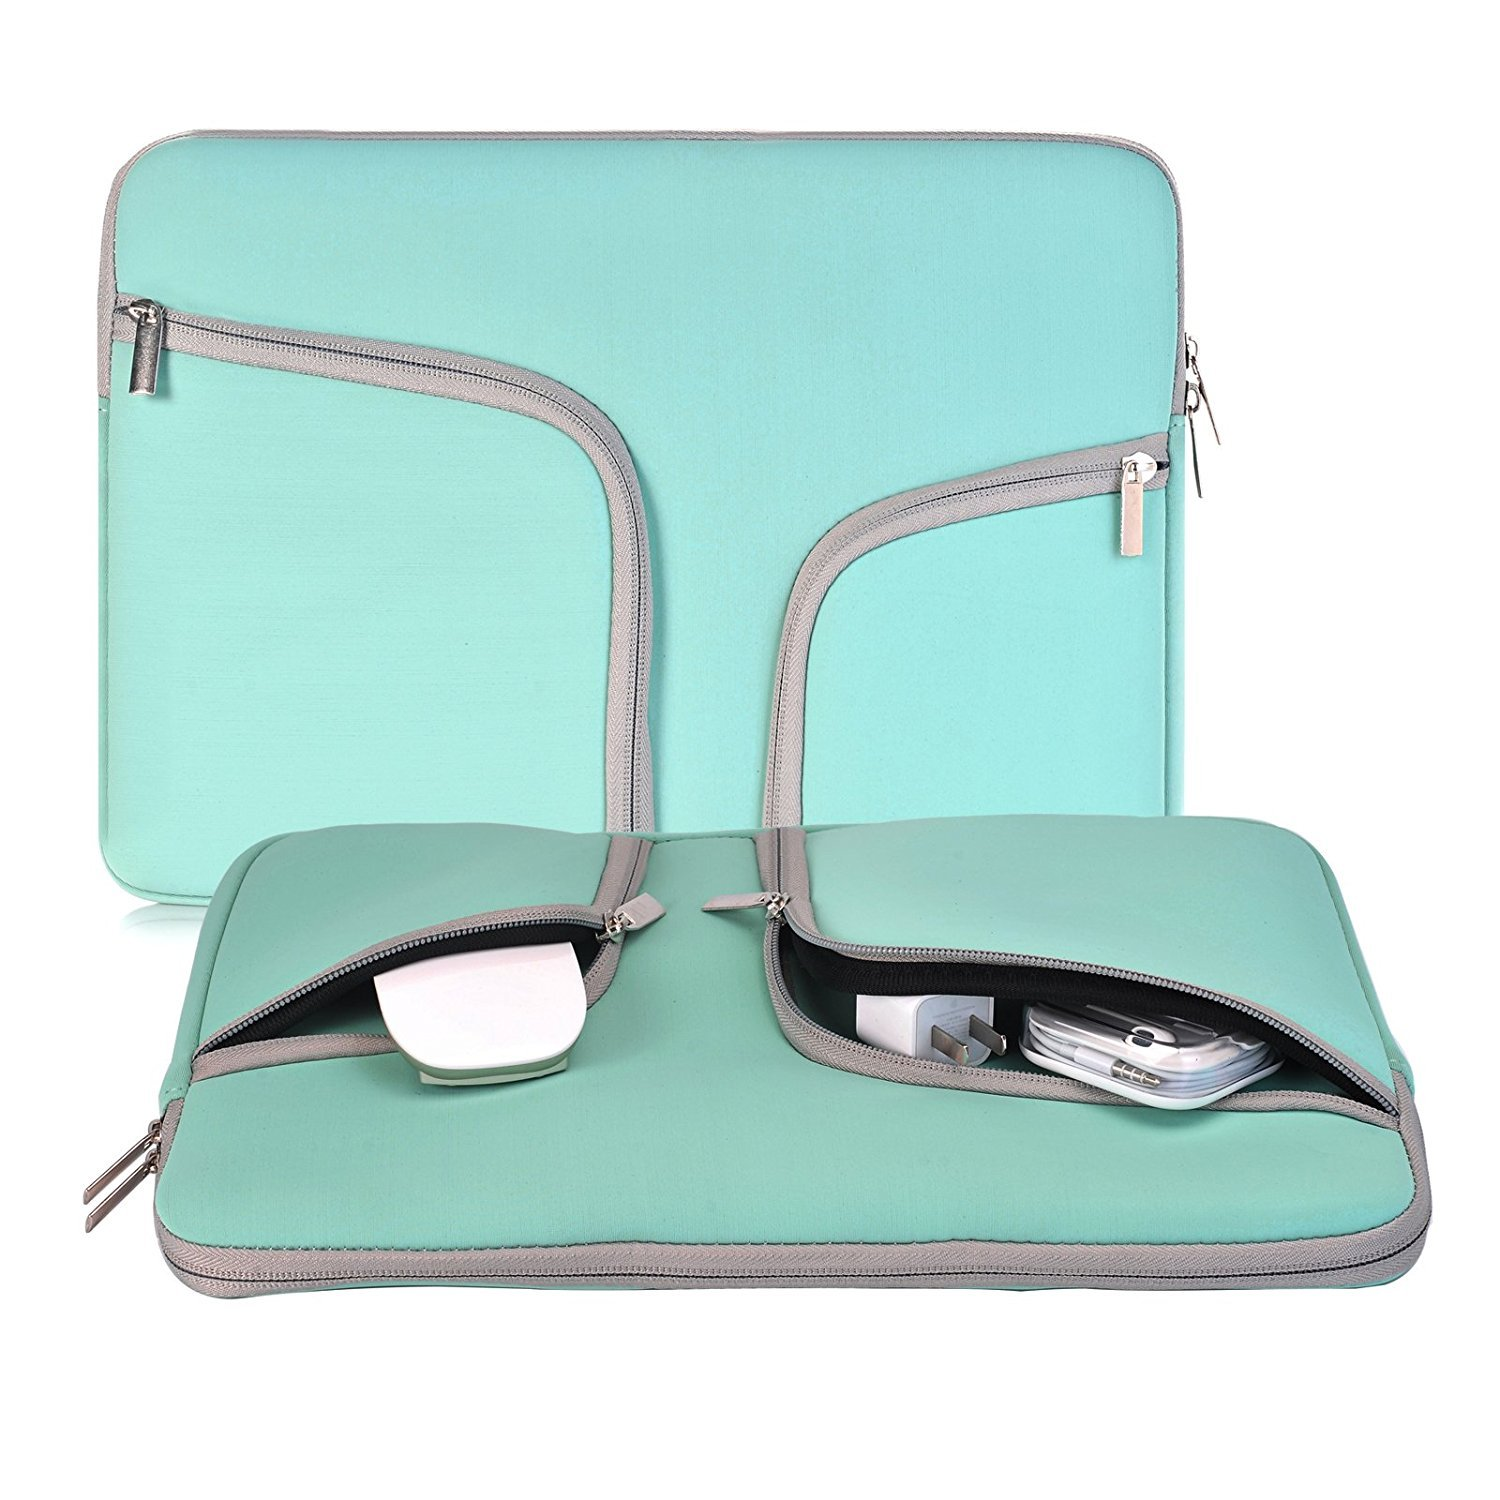 egiant Laptop Sleeve 13.3 Inch, Water-Repellent Protective Case Bag Compatible Mac Air 13, Pro 13 Retina, Pro 13 Touch Bar, Chromebook 13.3, Stream 13, Surface Book, Notebook Carrying Cases-Turquoise